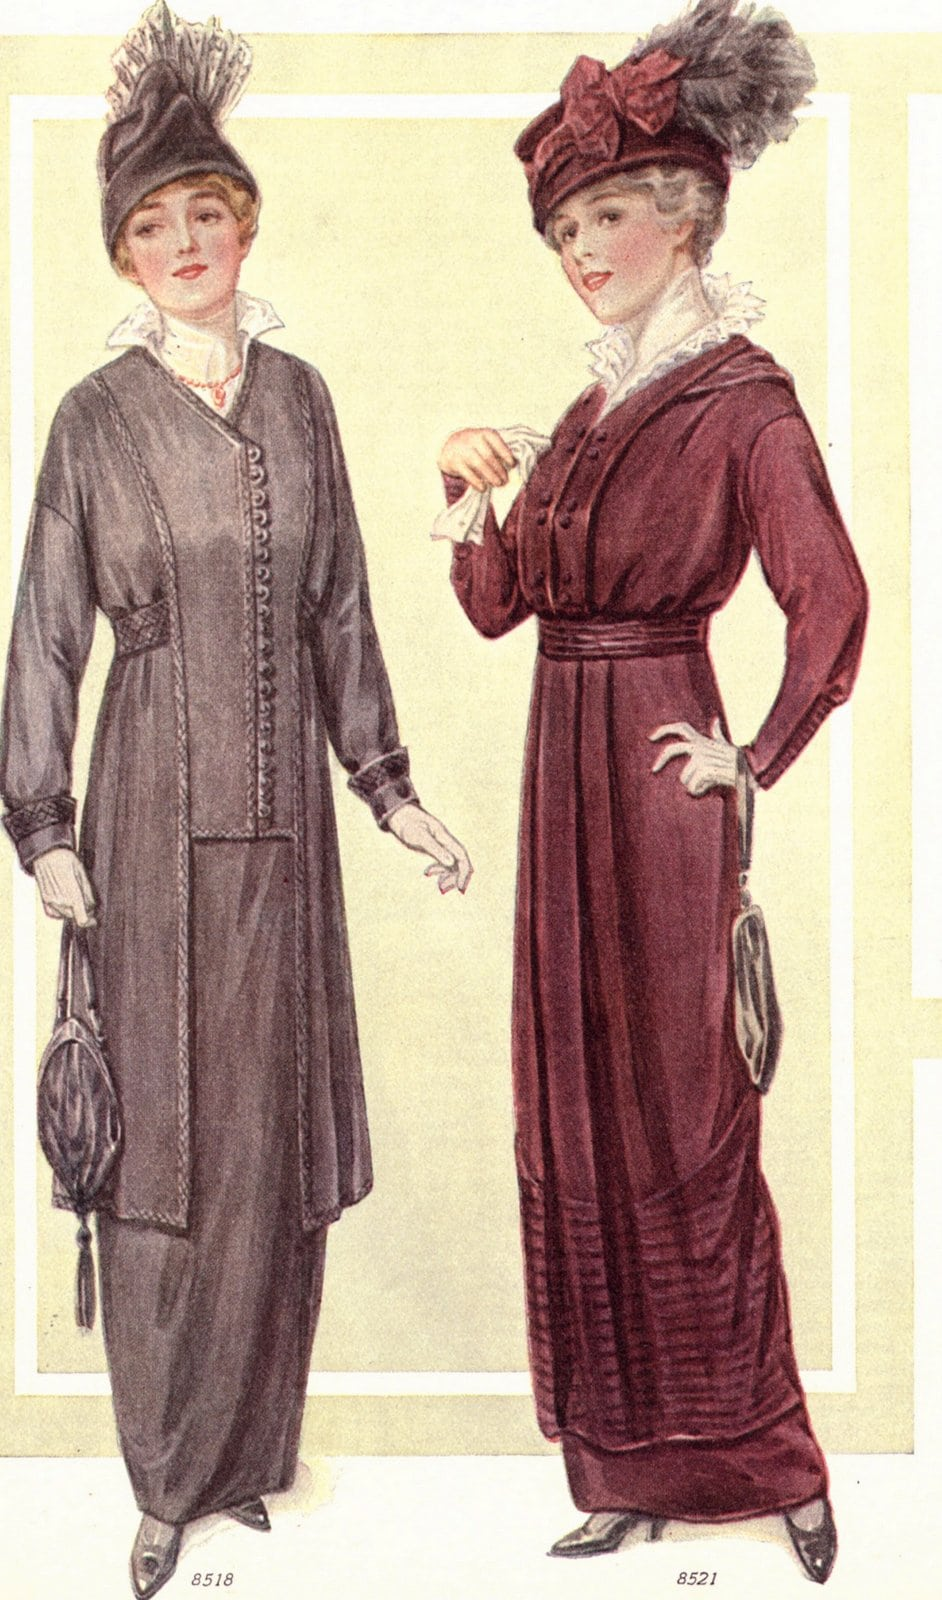 Womenswear from 1914 - Dresses and hats